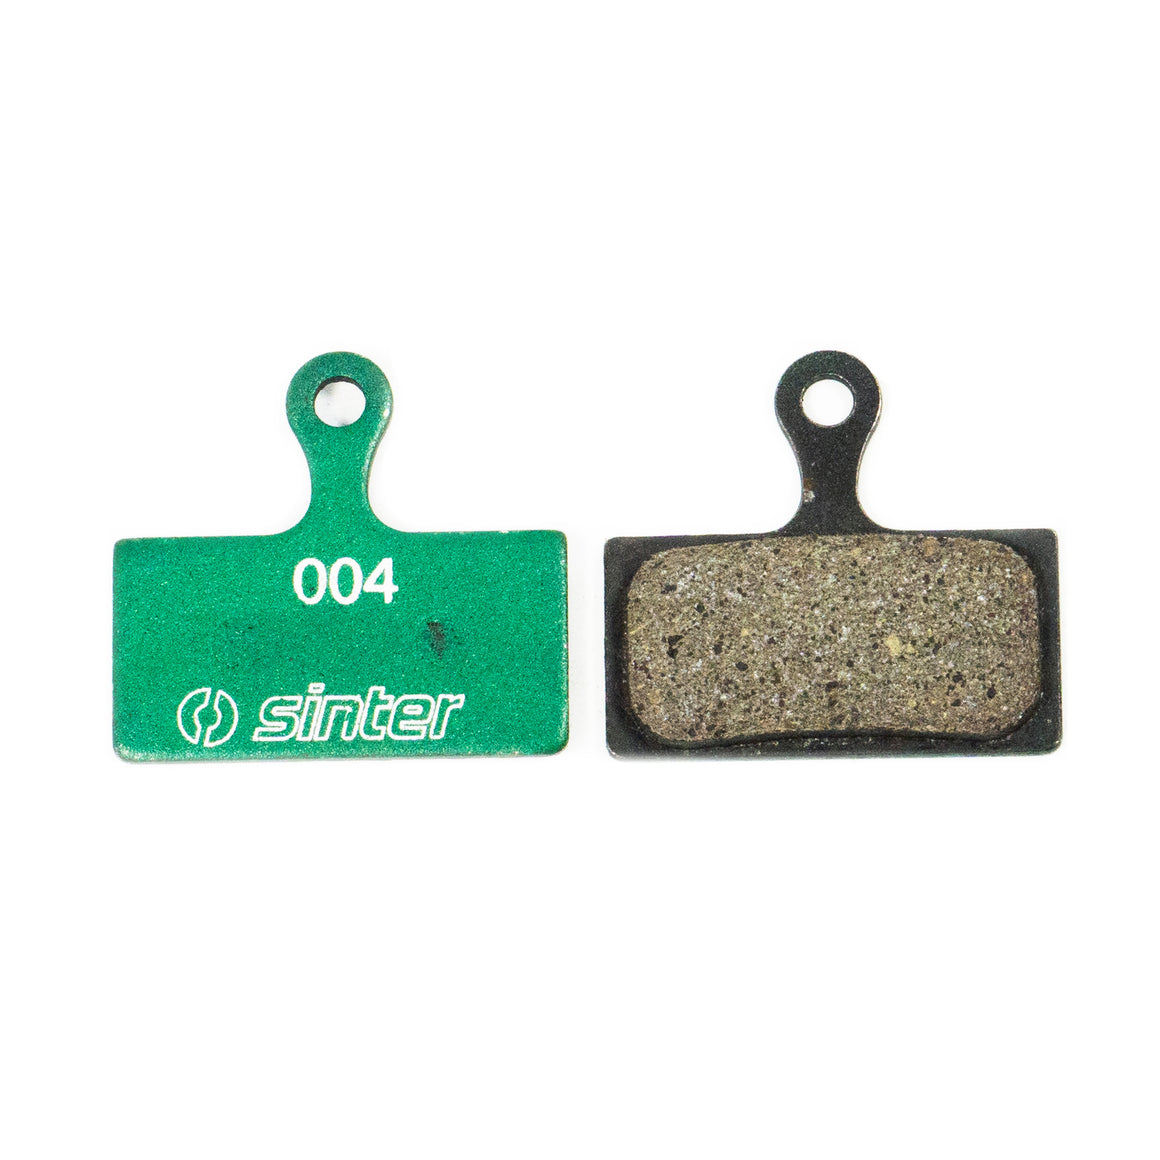 Sinter Race (Green) Brake Pads for Shimano XTR, XT, SLX Brakes